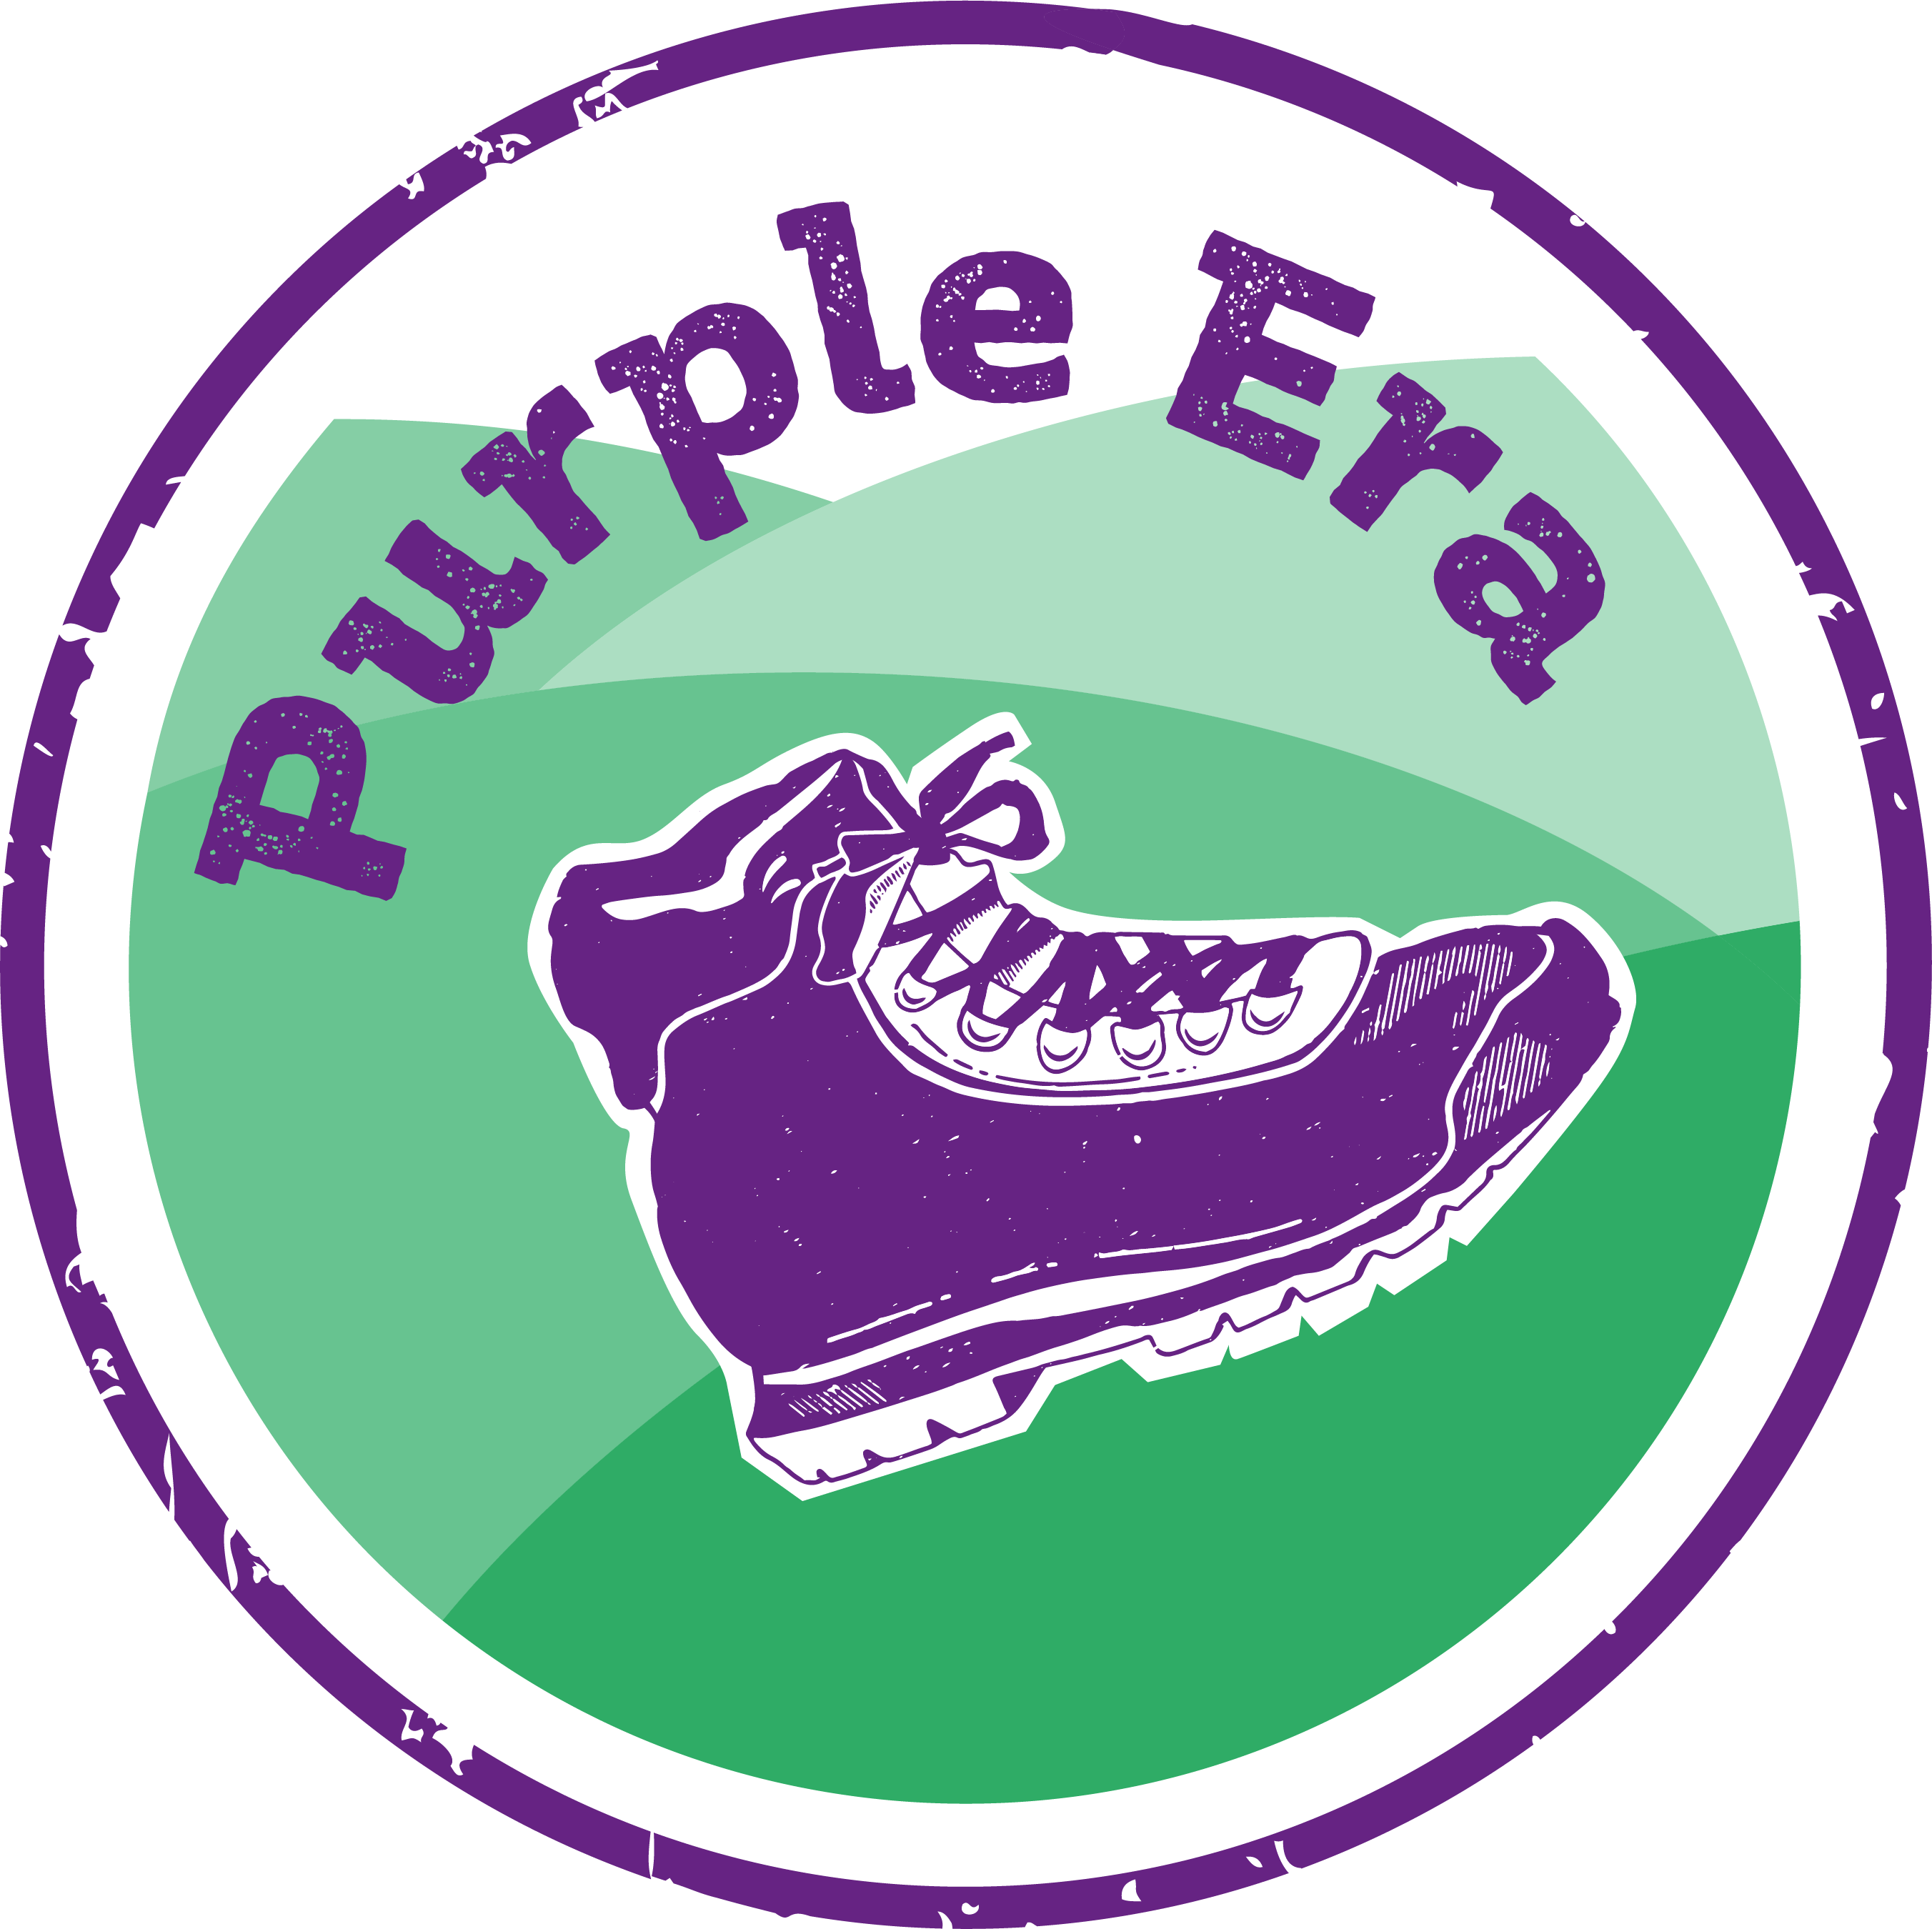 Step into your purple